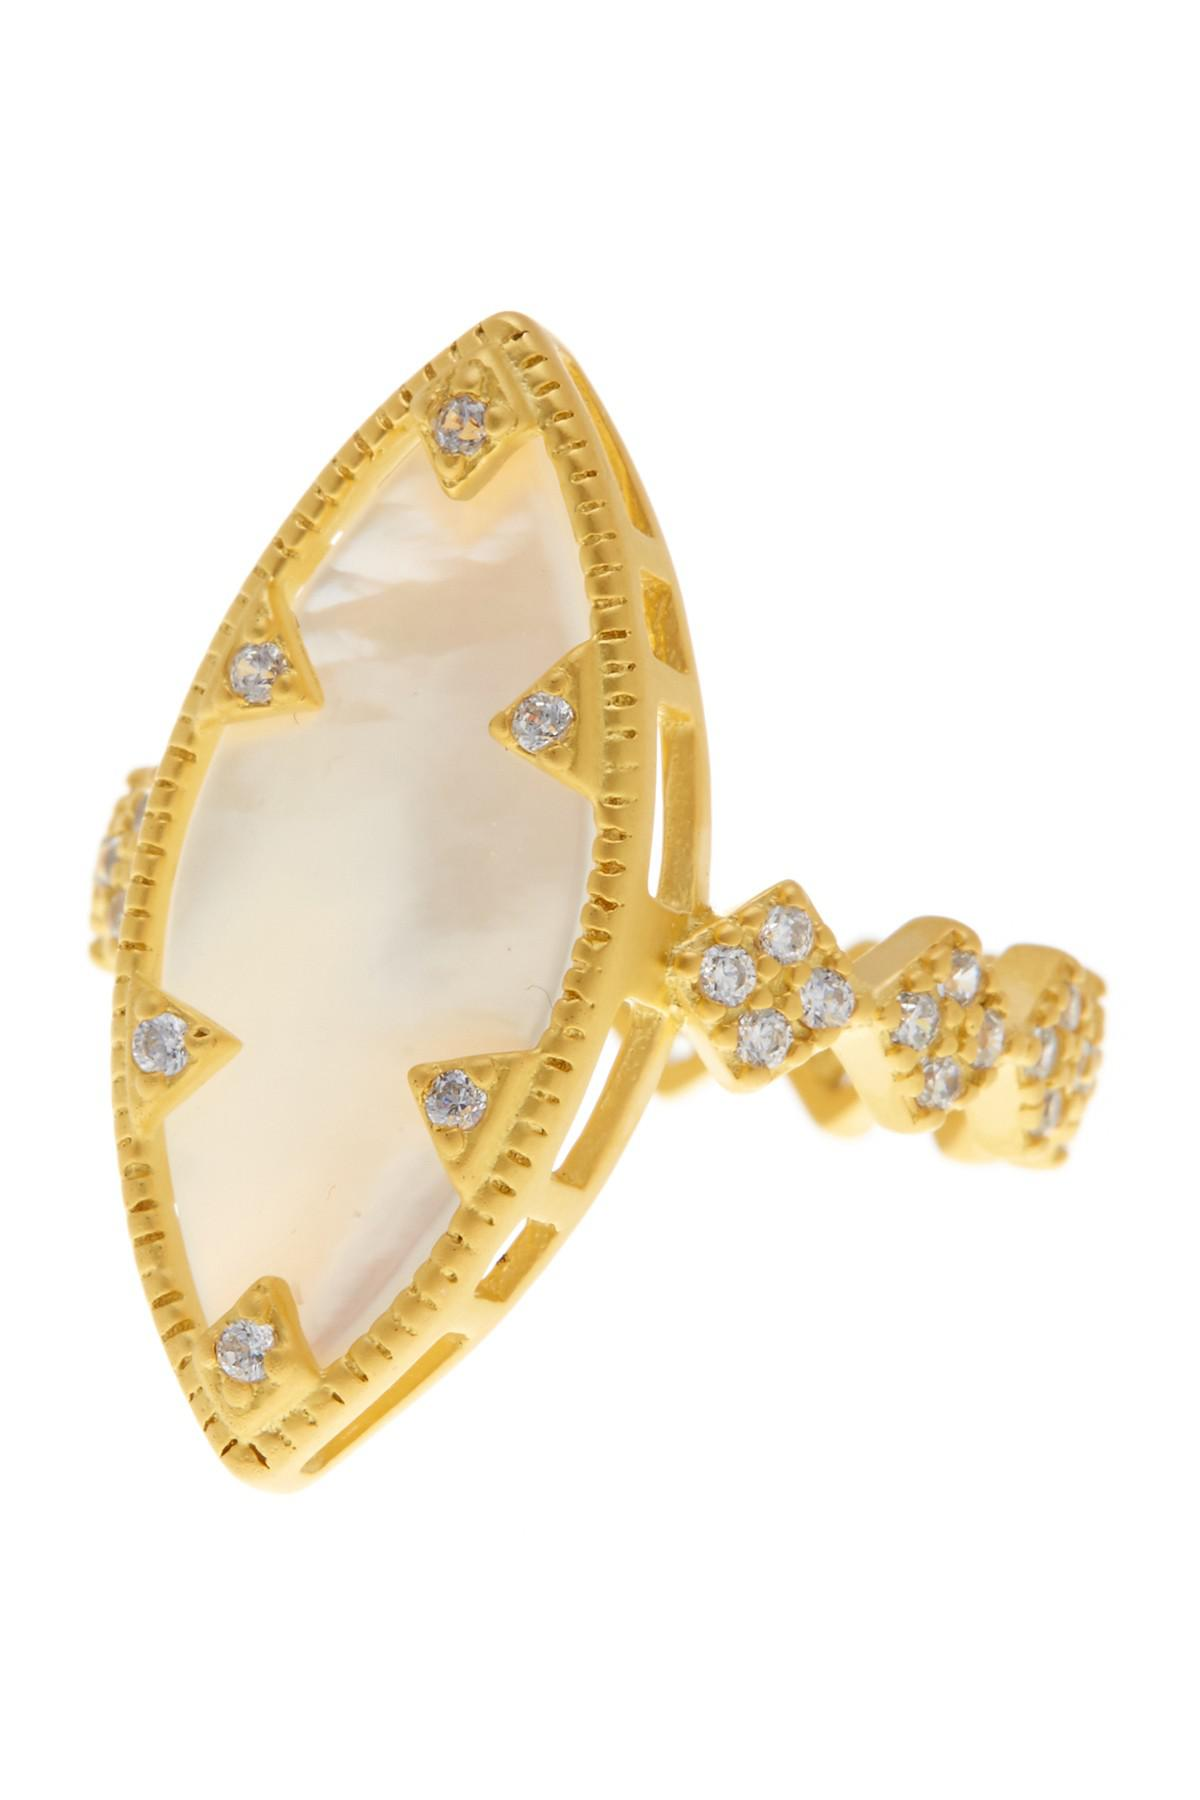 Freida Rothman Mother-of-Pearl Clover Harlequin Ring, Size 6